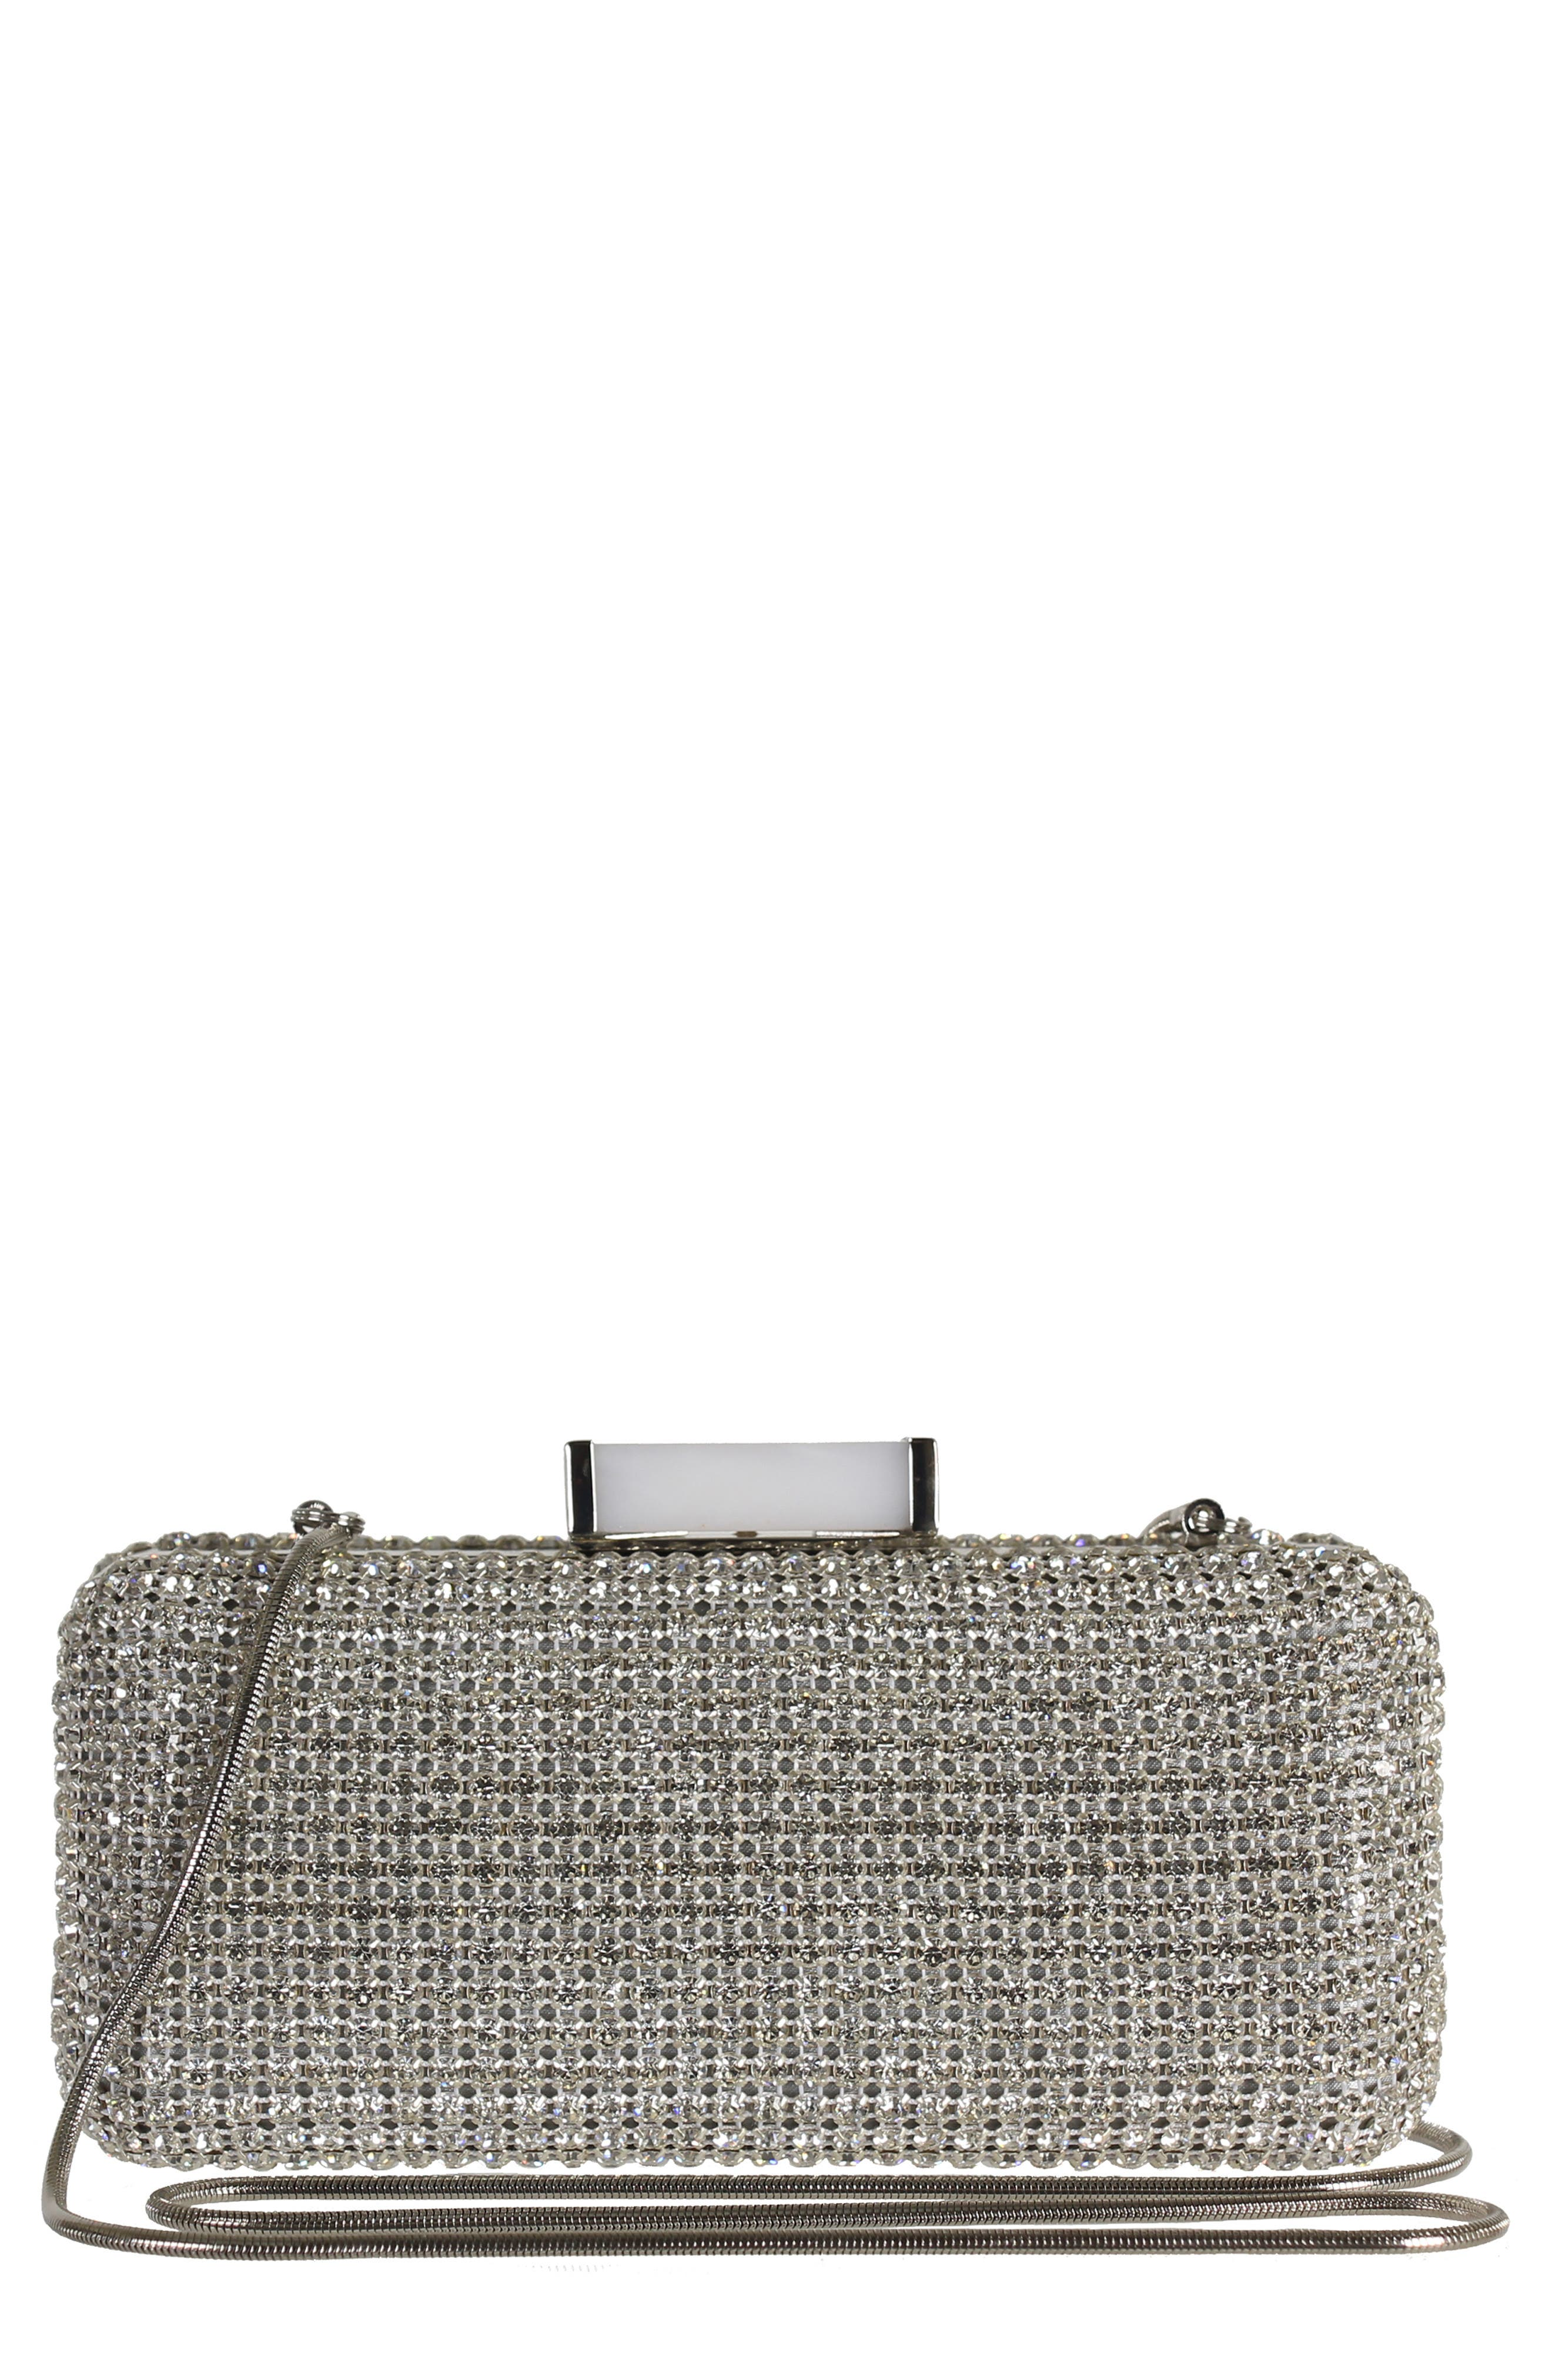 Cusp Embellished Clutch,                             Main thumbnail 1, color,                             040